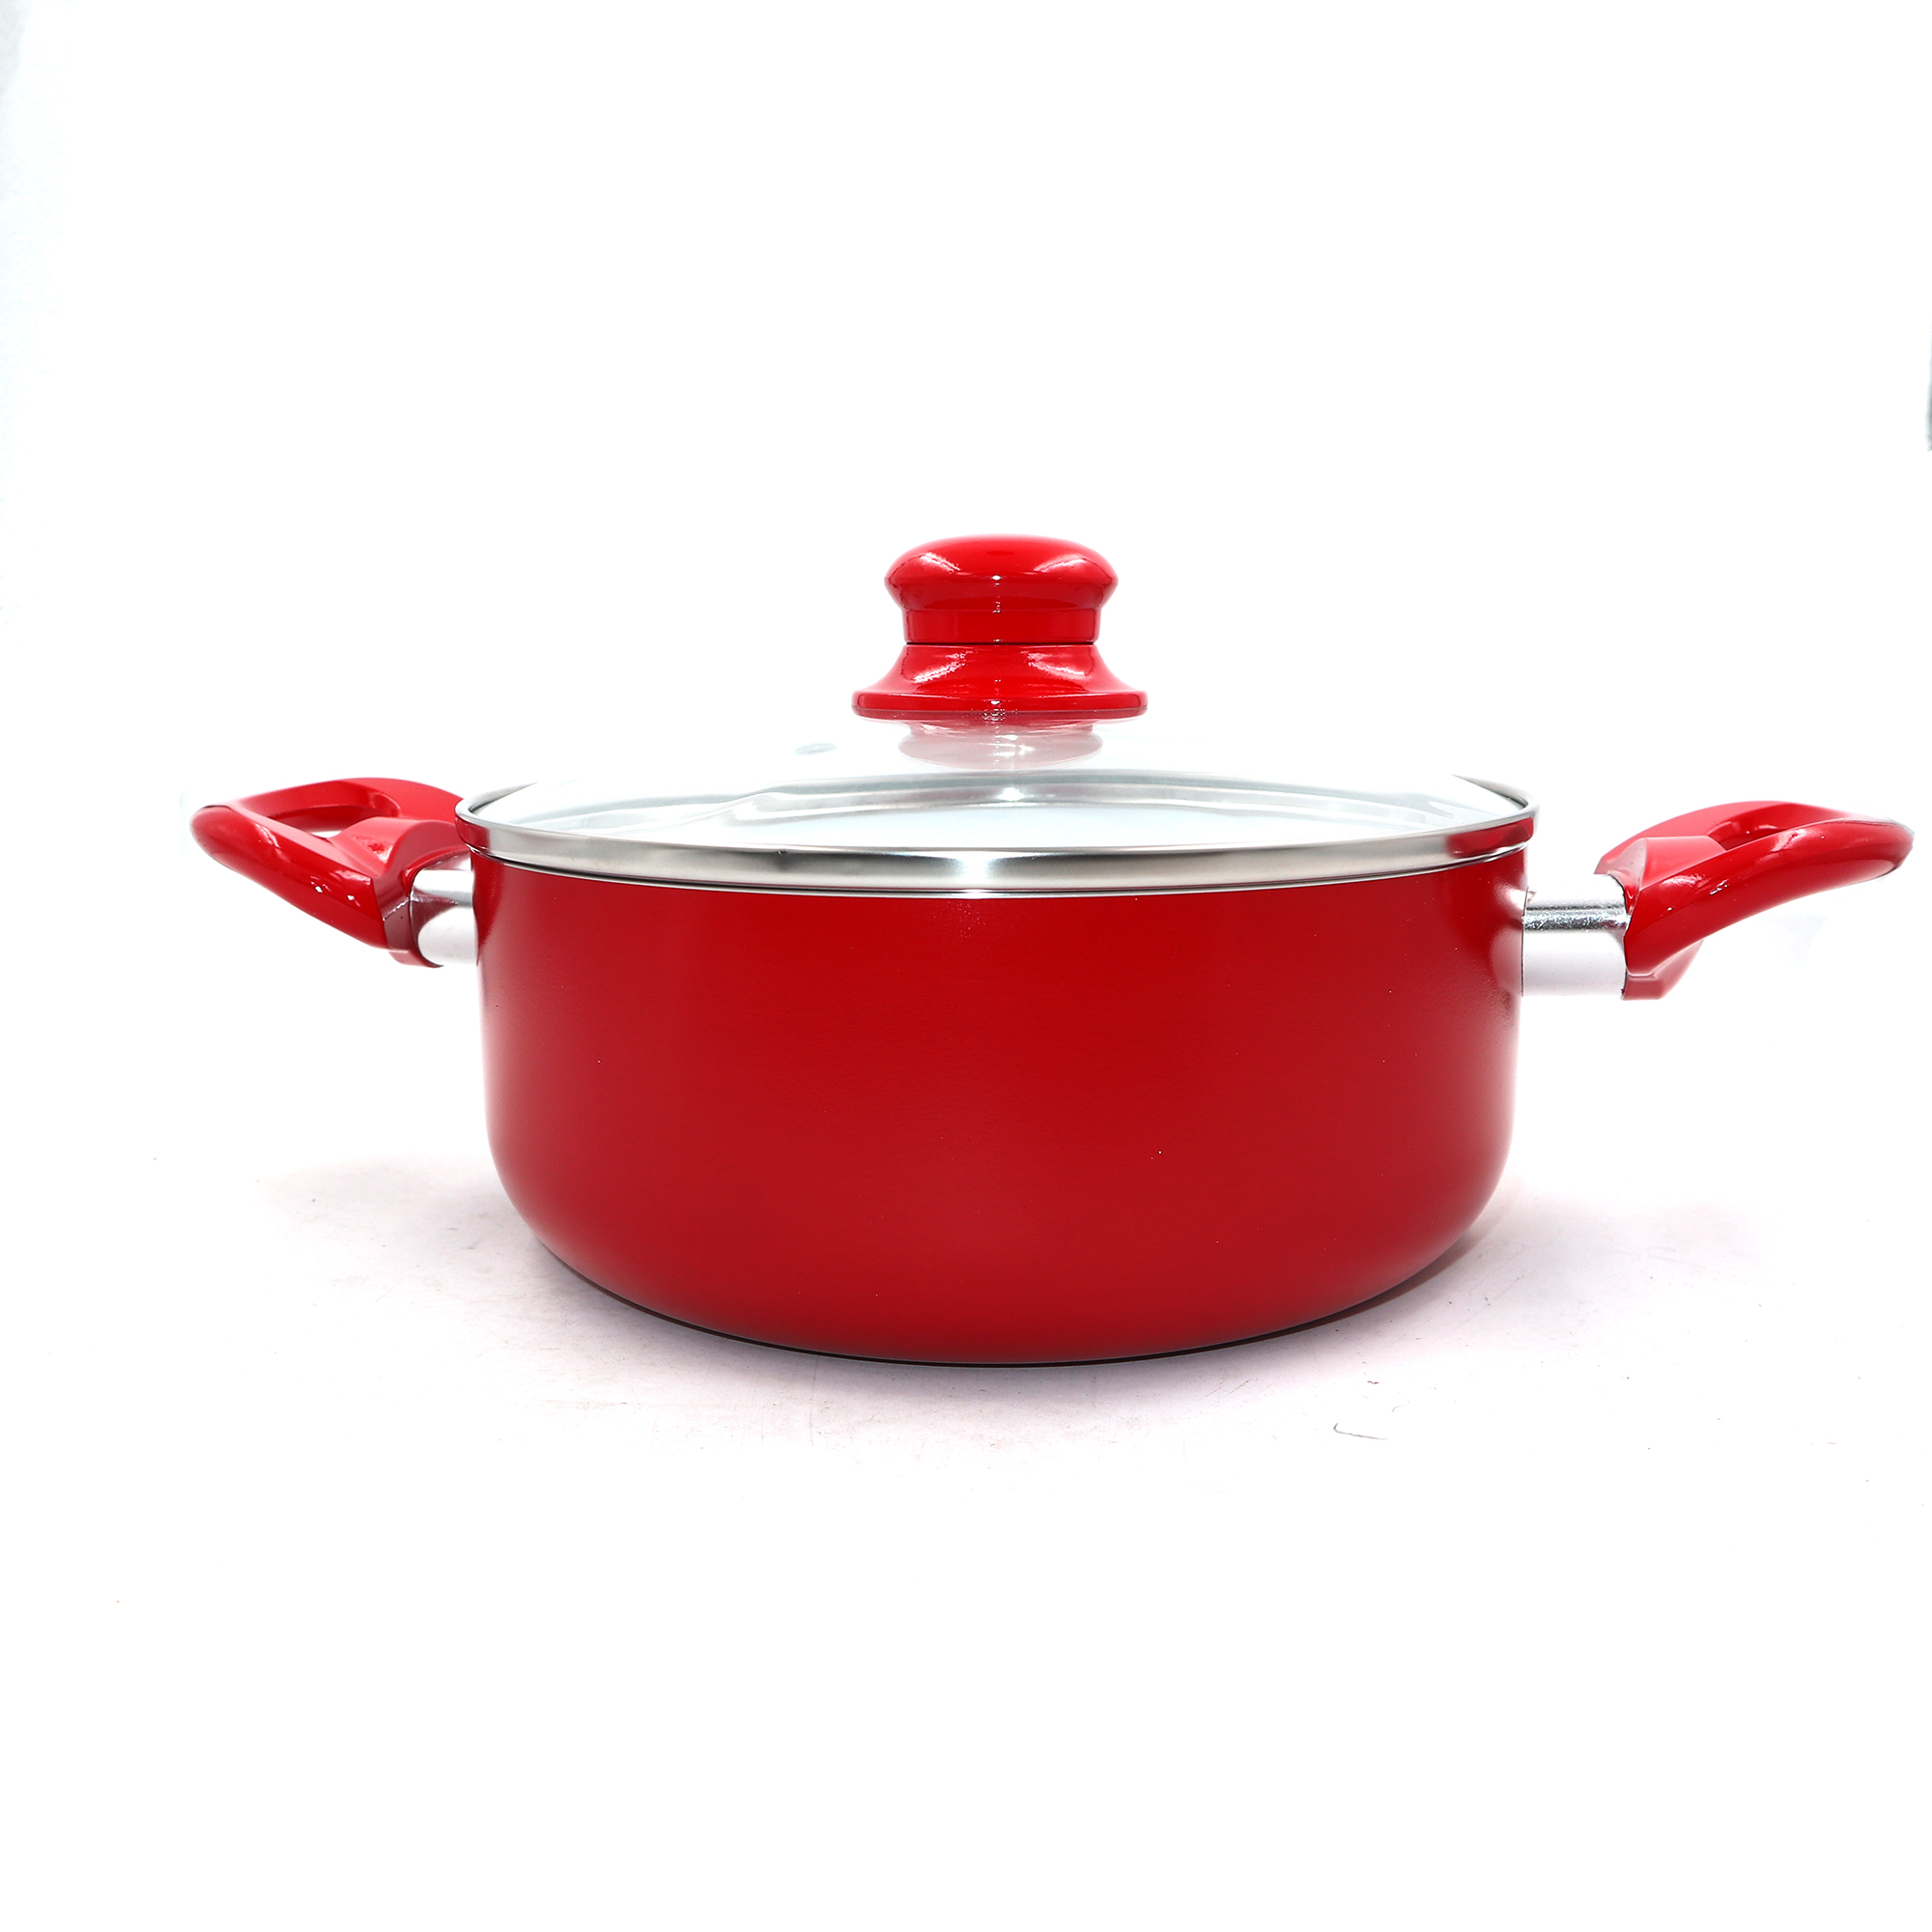 7PCS Non-stick Ceramic Coated RED Saucepans Cookware Set Frying Pan Glass Lid